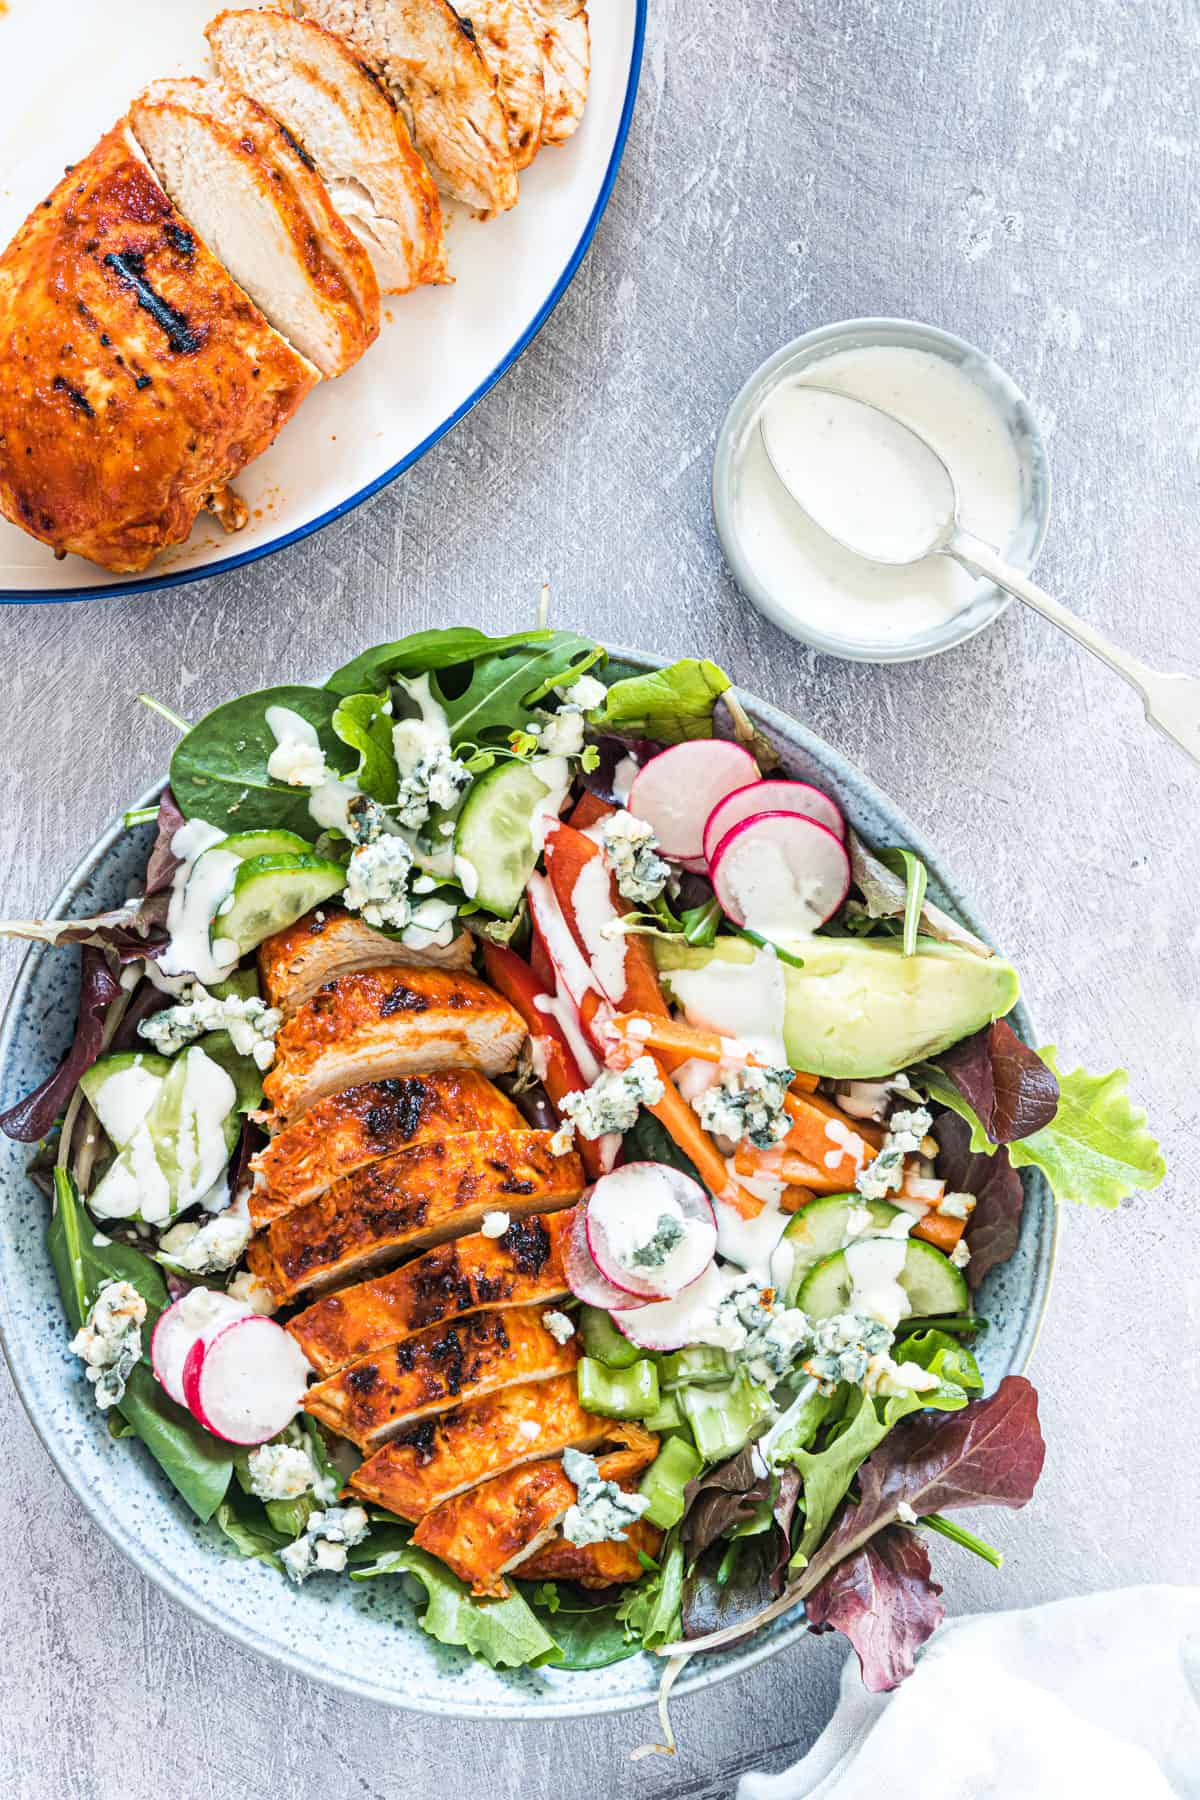 the finished buffalo chicken salad next to a plate of sliced grilled buffalo chicken and a cup of ranch dressing